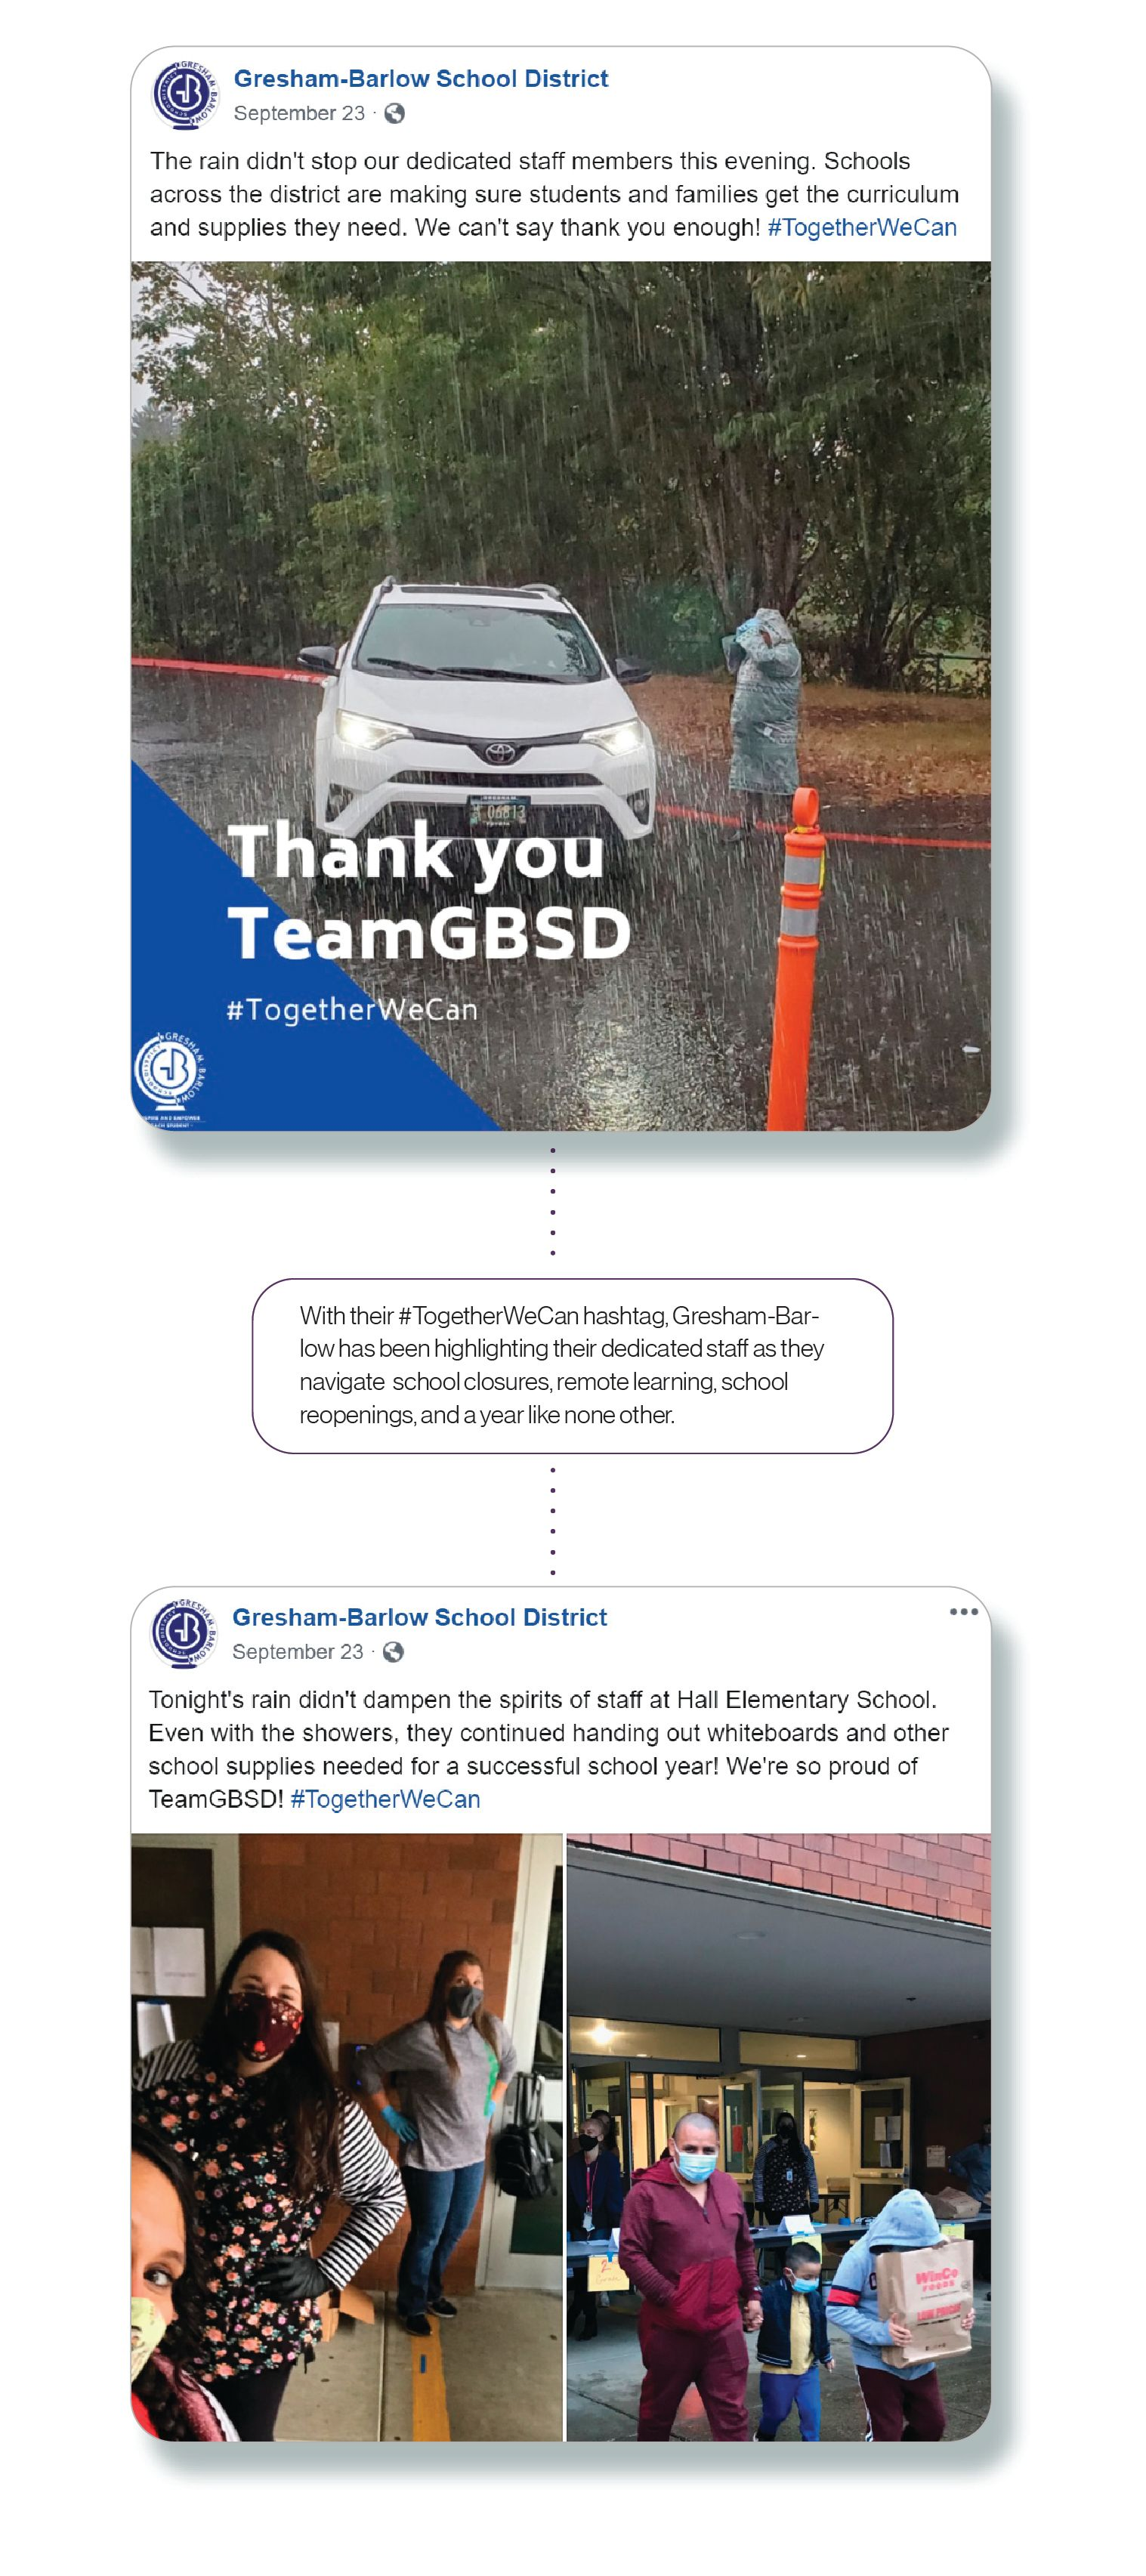 Images: two Facebook posts from Gresham-Barlow highlighting their staff's effort to support students and families, with the SchoolCEO caption,'With their #TogetherWeCan hashtag, Gresham-Barlow has been highlighting their dedicated staff as they navigate school closures, remote learning, school reopening, and a year like no other.'